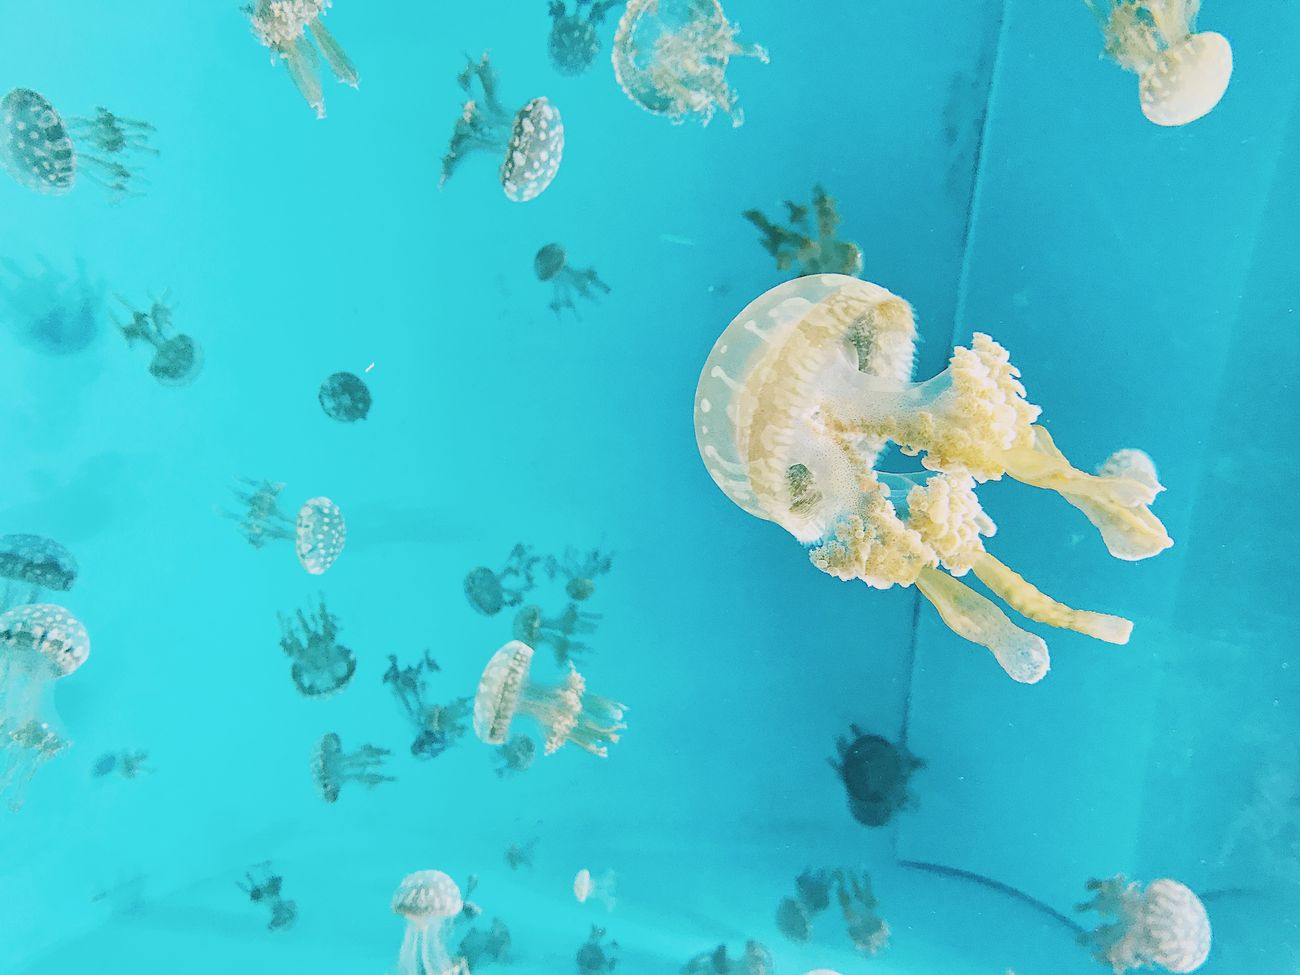 Jellyfish No. 4 Jellyfish Underwater Sea Life Water Swimming No People UnderSea Sea Blue Animals In The Wild Floating In Water Animal Themes Close-up Nature Beauty In Nature Day Aquarium